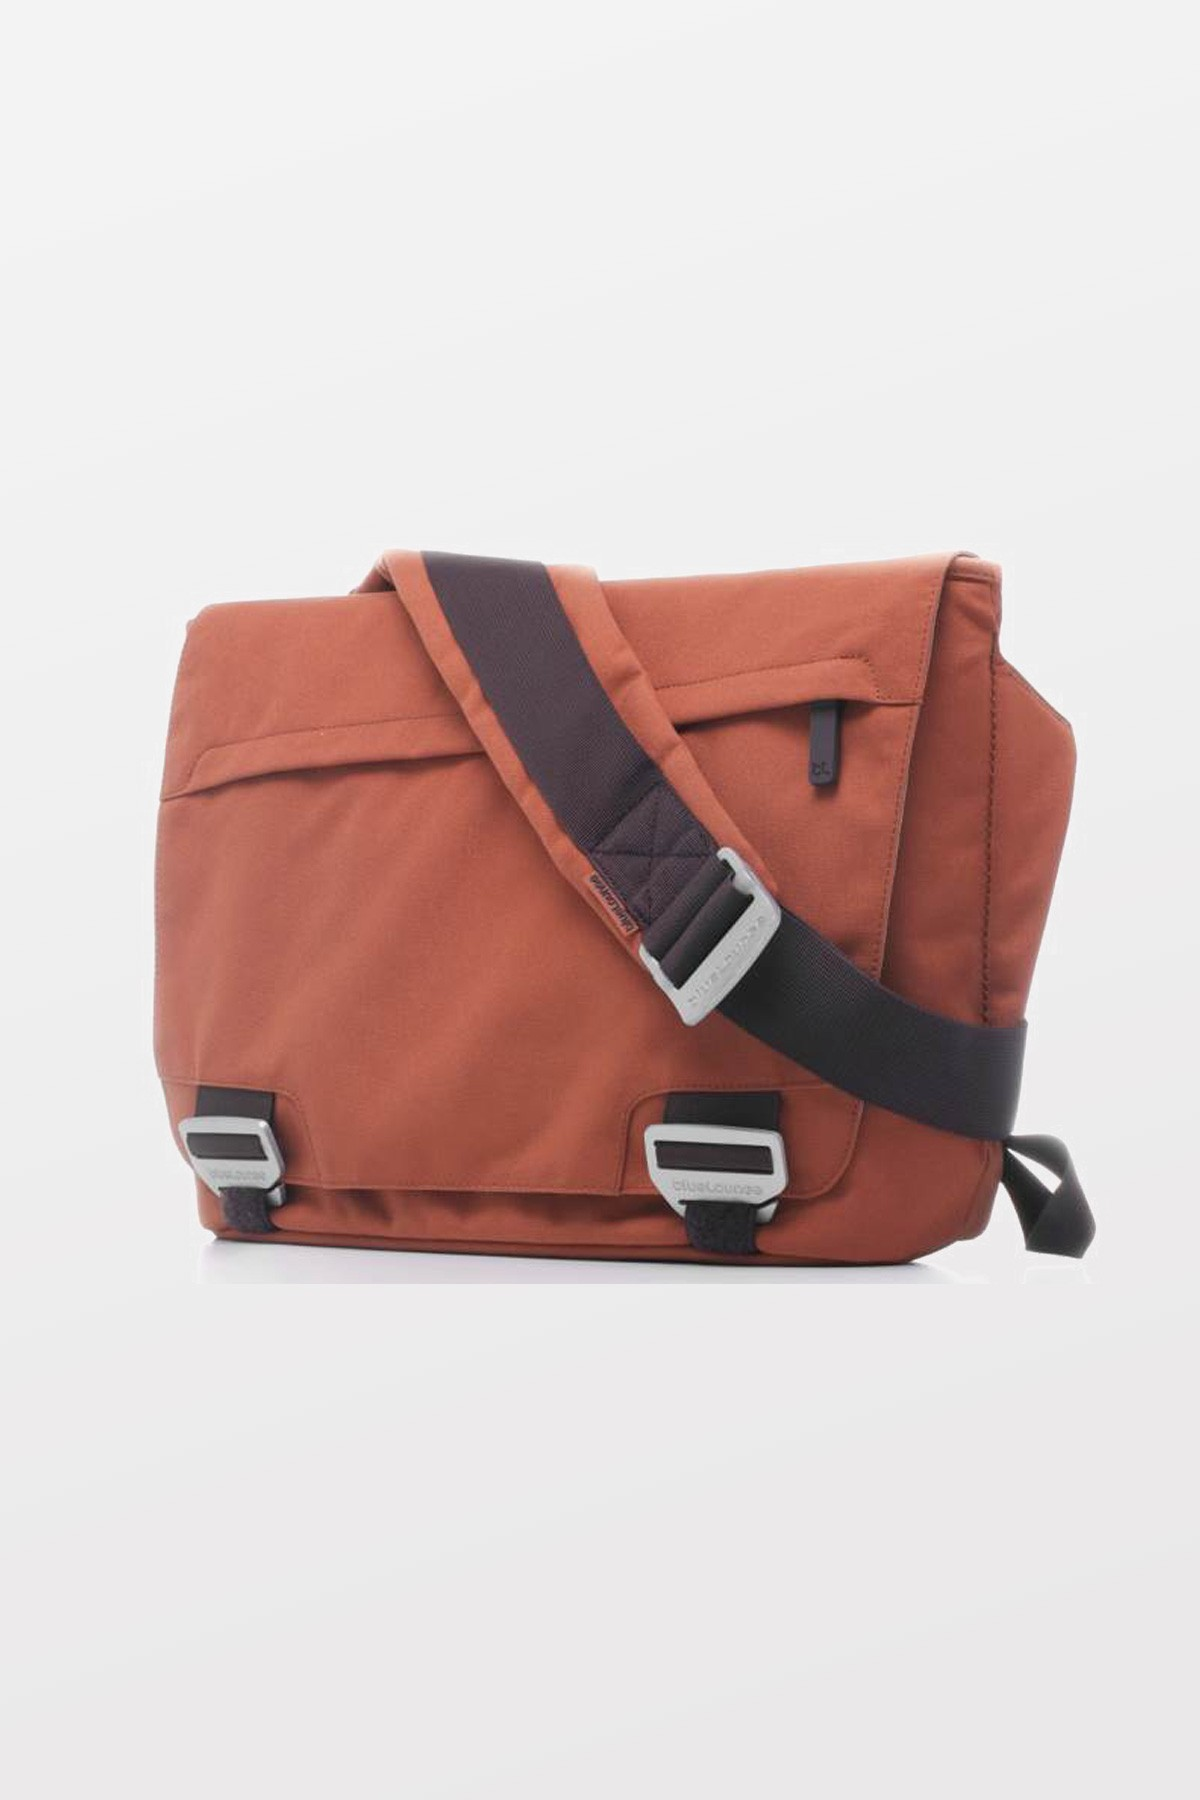 Bluelounge Messenger Bag Small - Rust